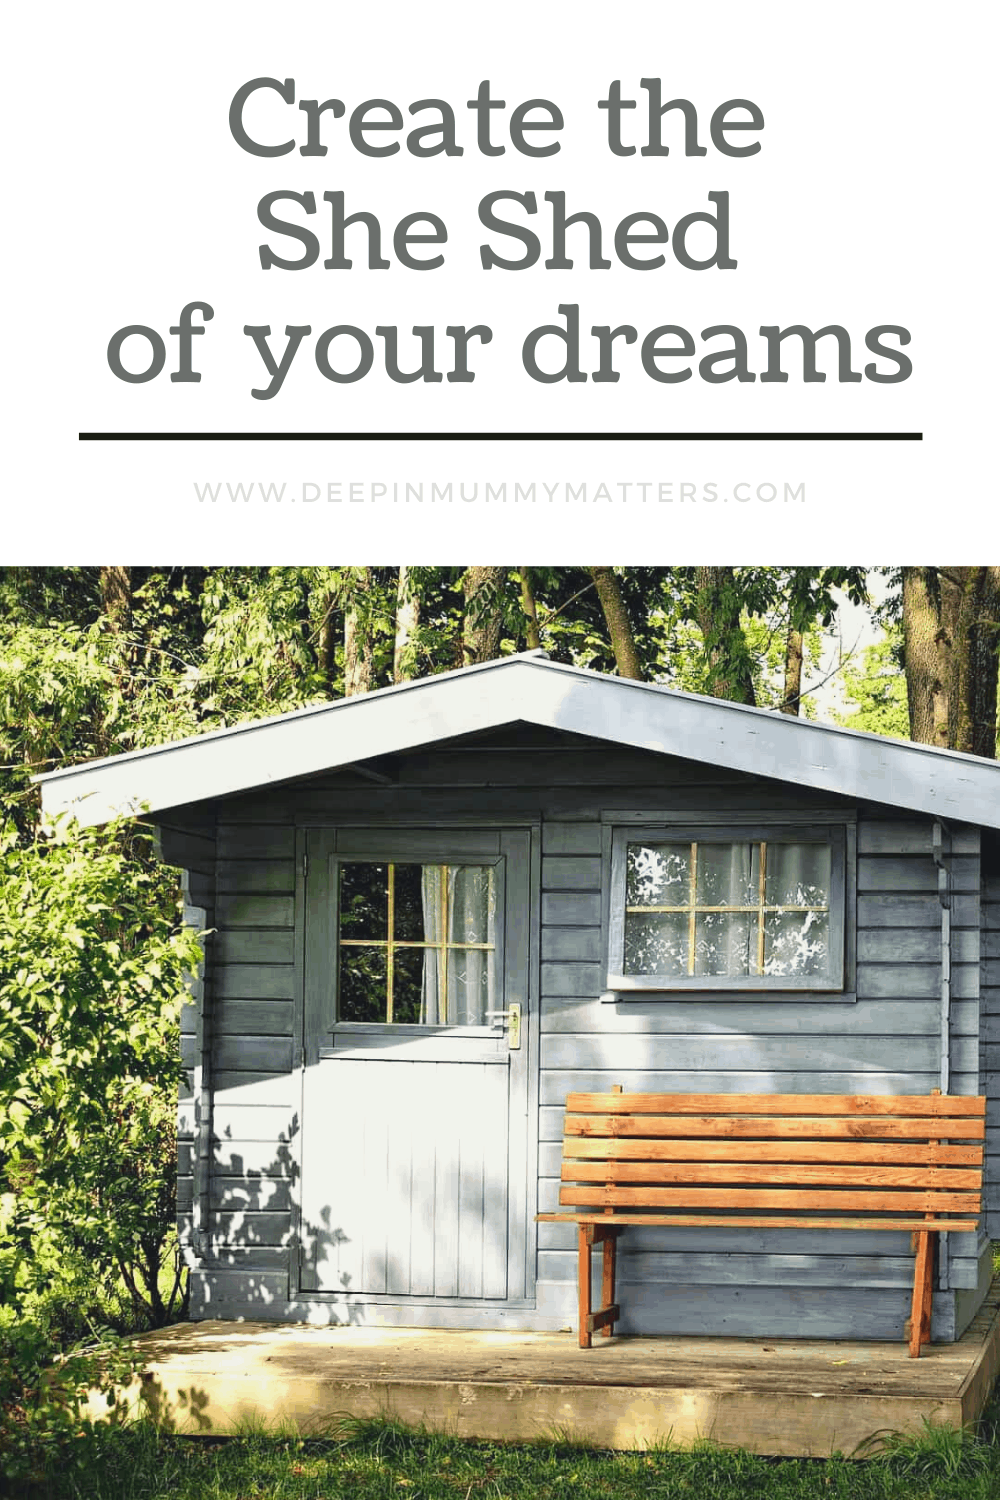 So what exactly is a she shed, and how do you make one into your own personal paradise? Read on to find out how to create your own little hideaway.